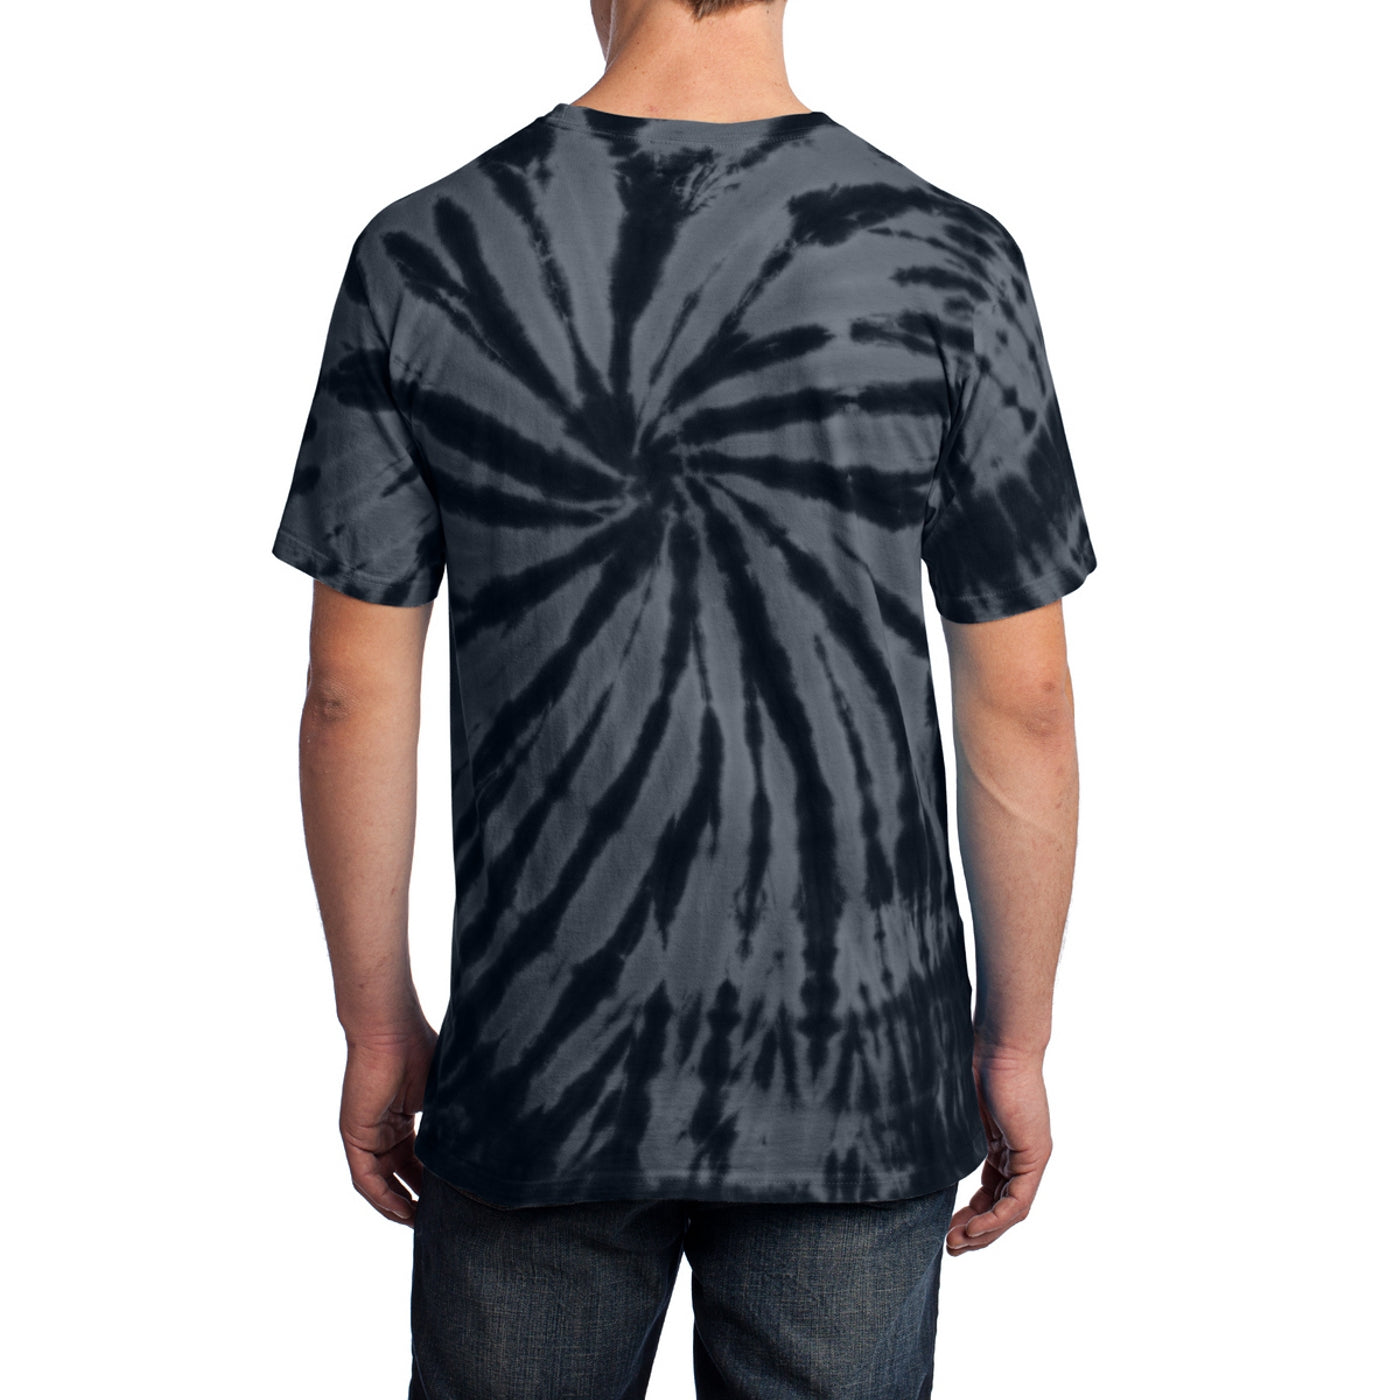 Men's Tie-Dye Tee - Black - Back